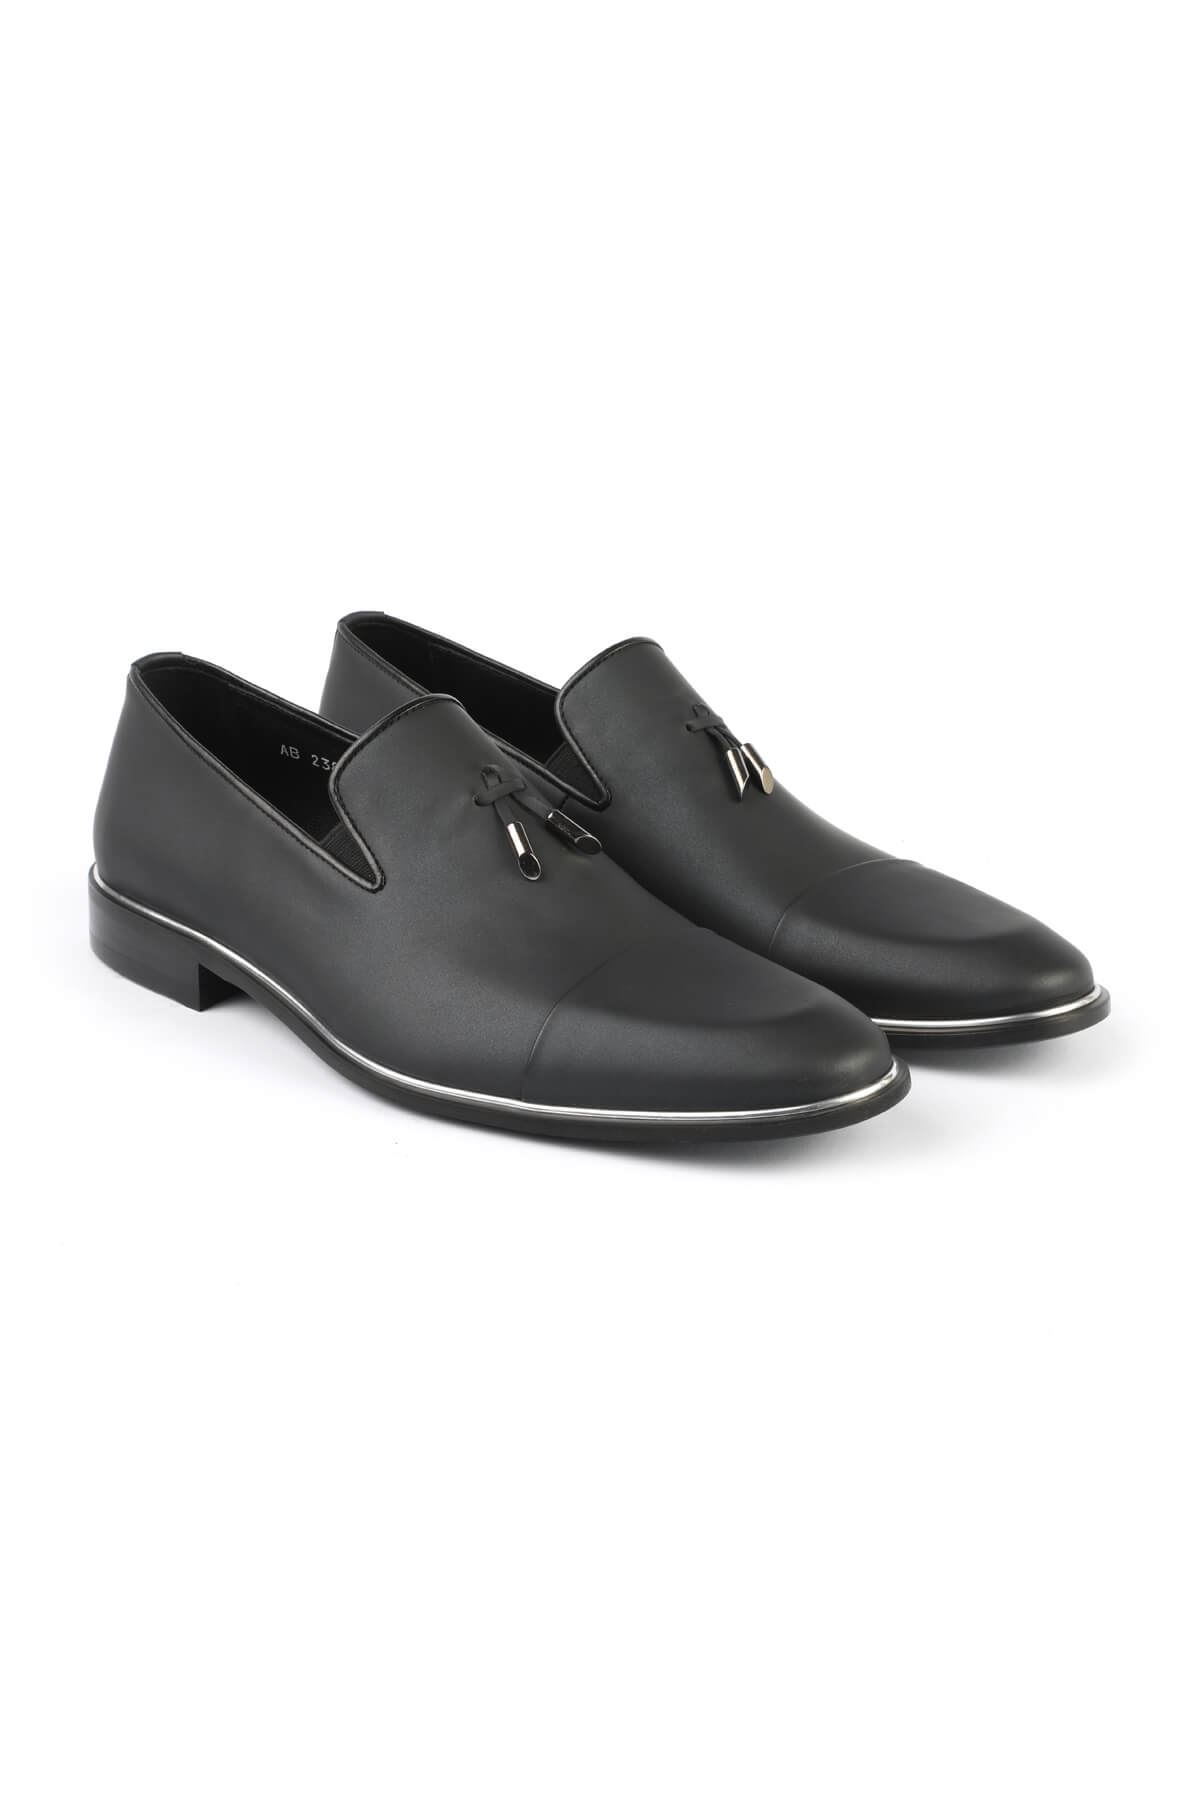 Libero 2385 Black Classic Shoes